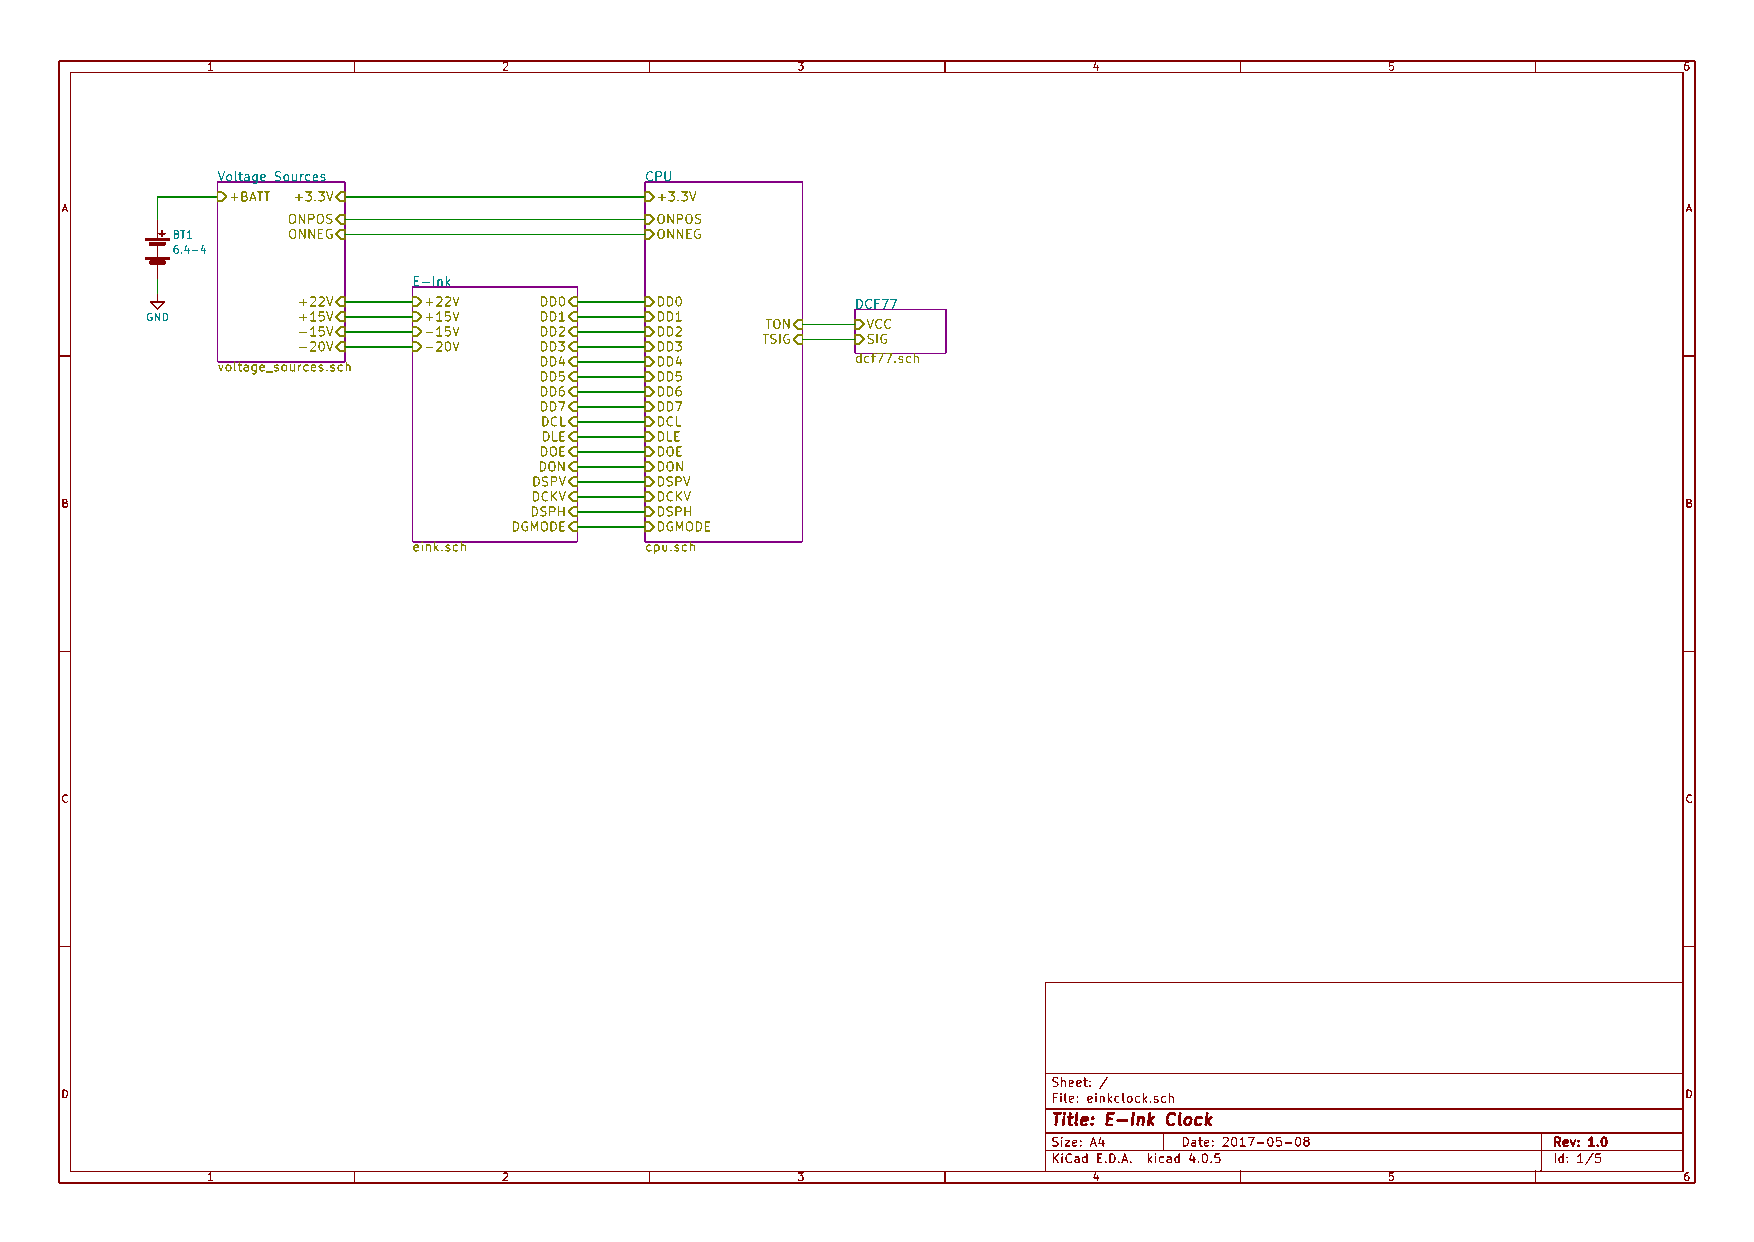 Dcf77 Clock Schematic Trusted Wiring Diagrams Electronics 7segment Led Page 4 Bittechnet Forums E Ink Hardware Pushrax Com Vfd Diagram And Control